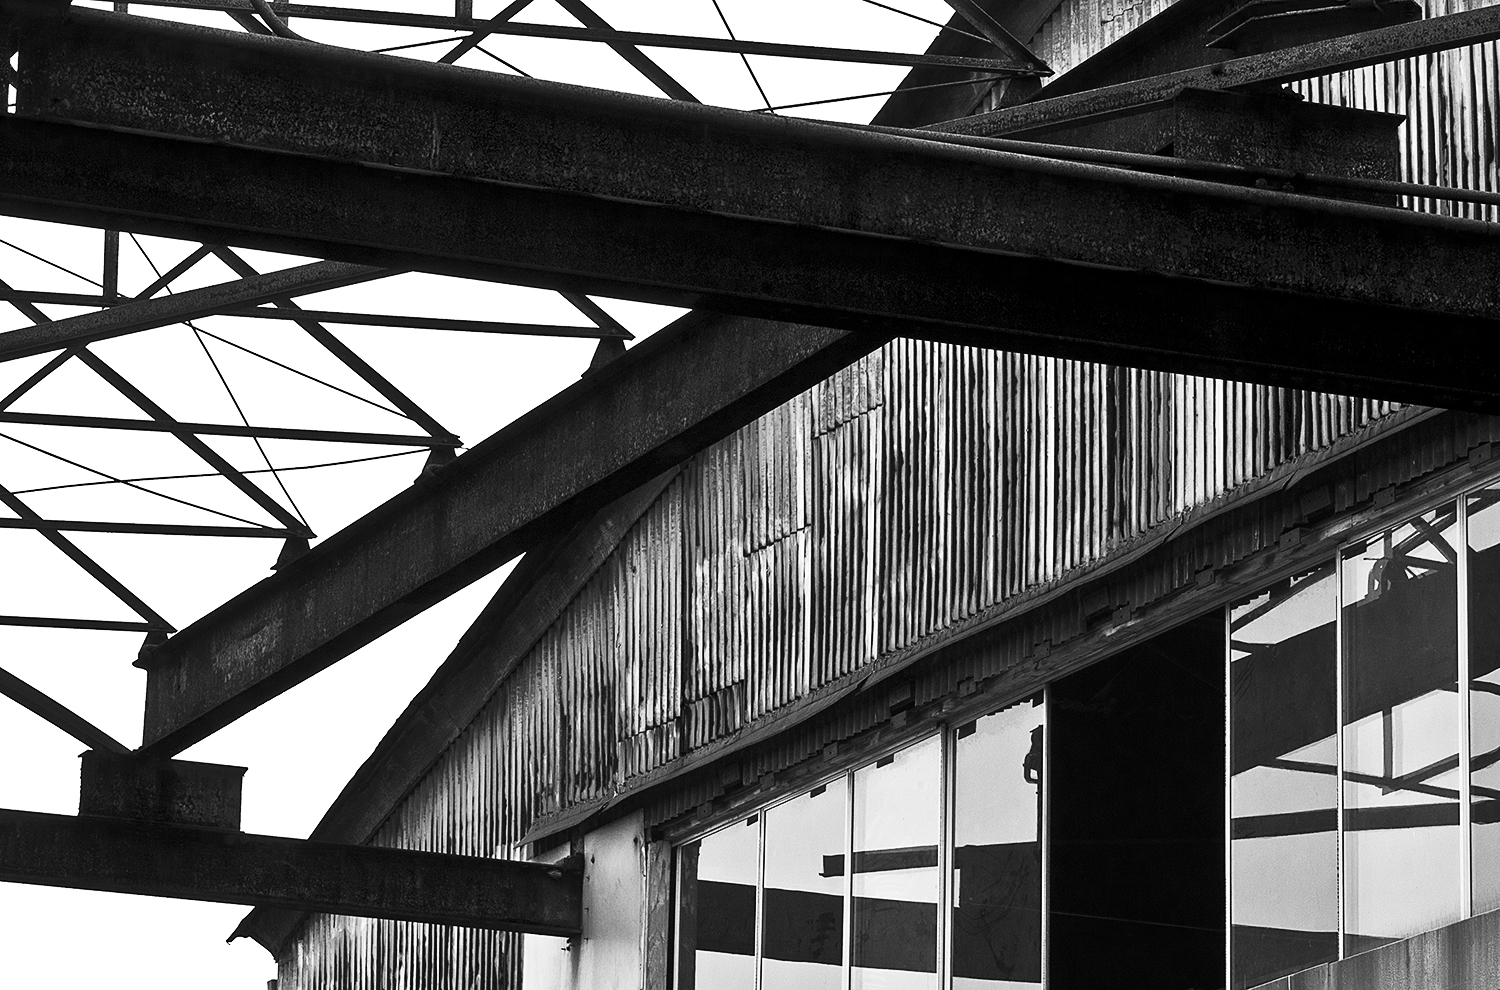 Steel Yard IV